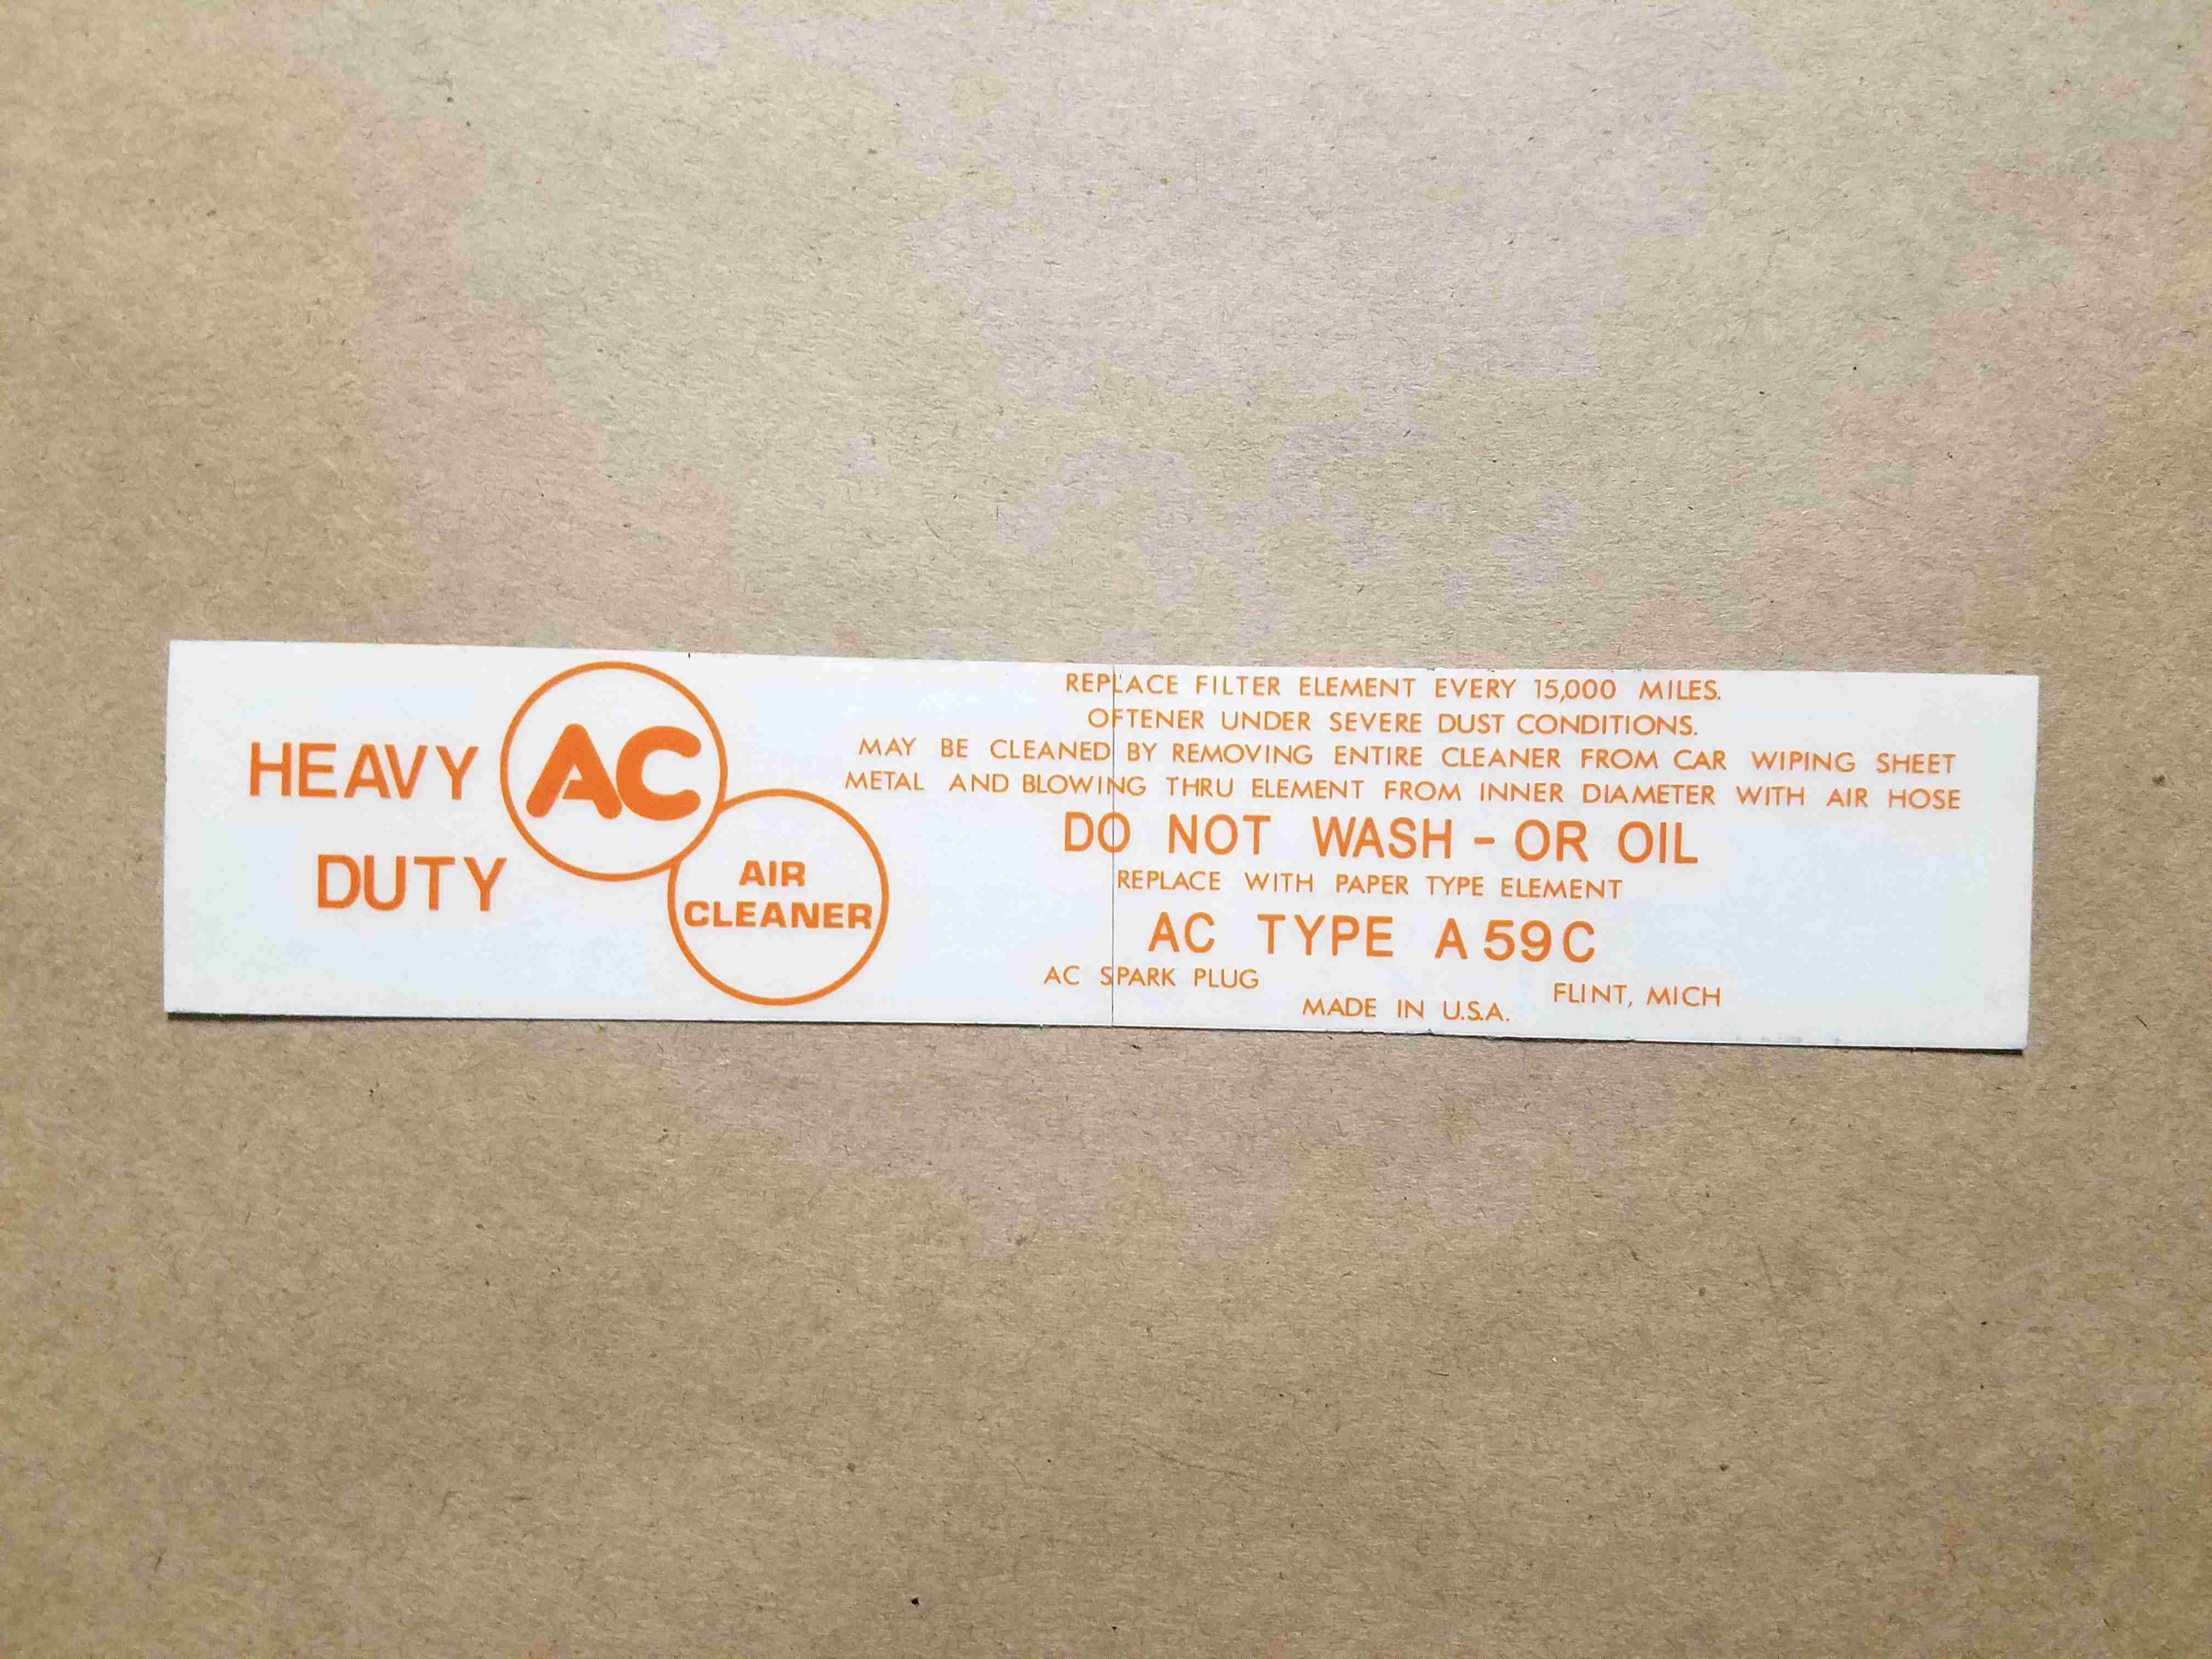 1957 All Orange Air Cleaner Service Instruction Decal, rectangular, for A59C paper element air cleaner